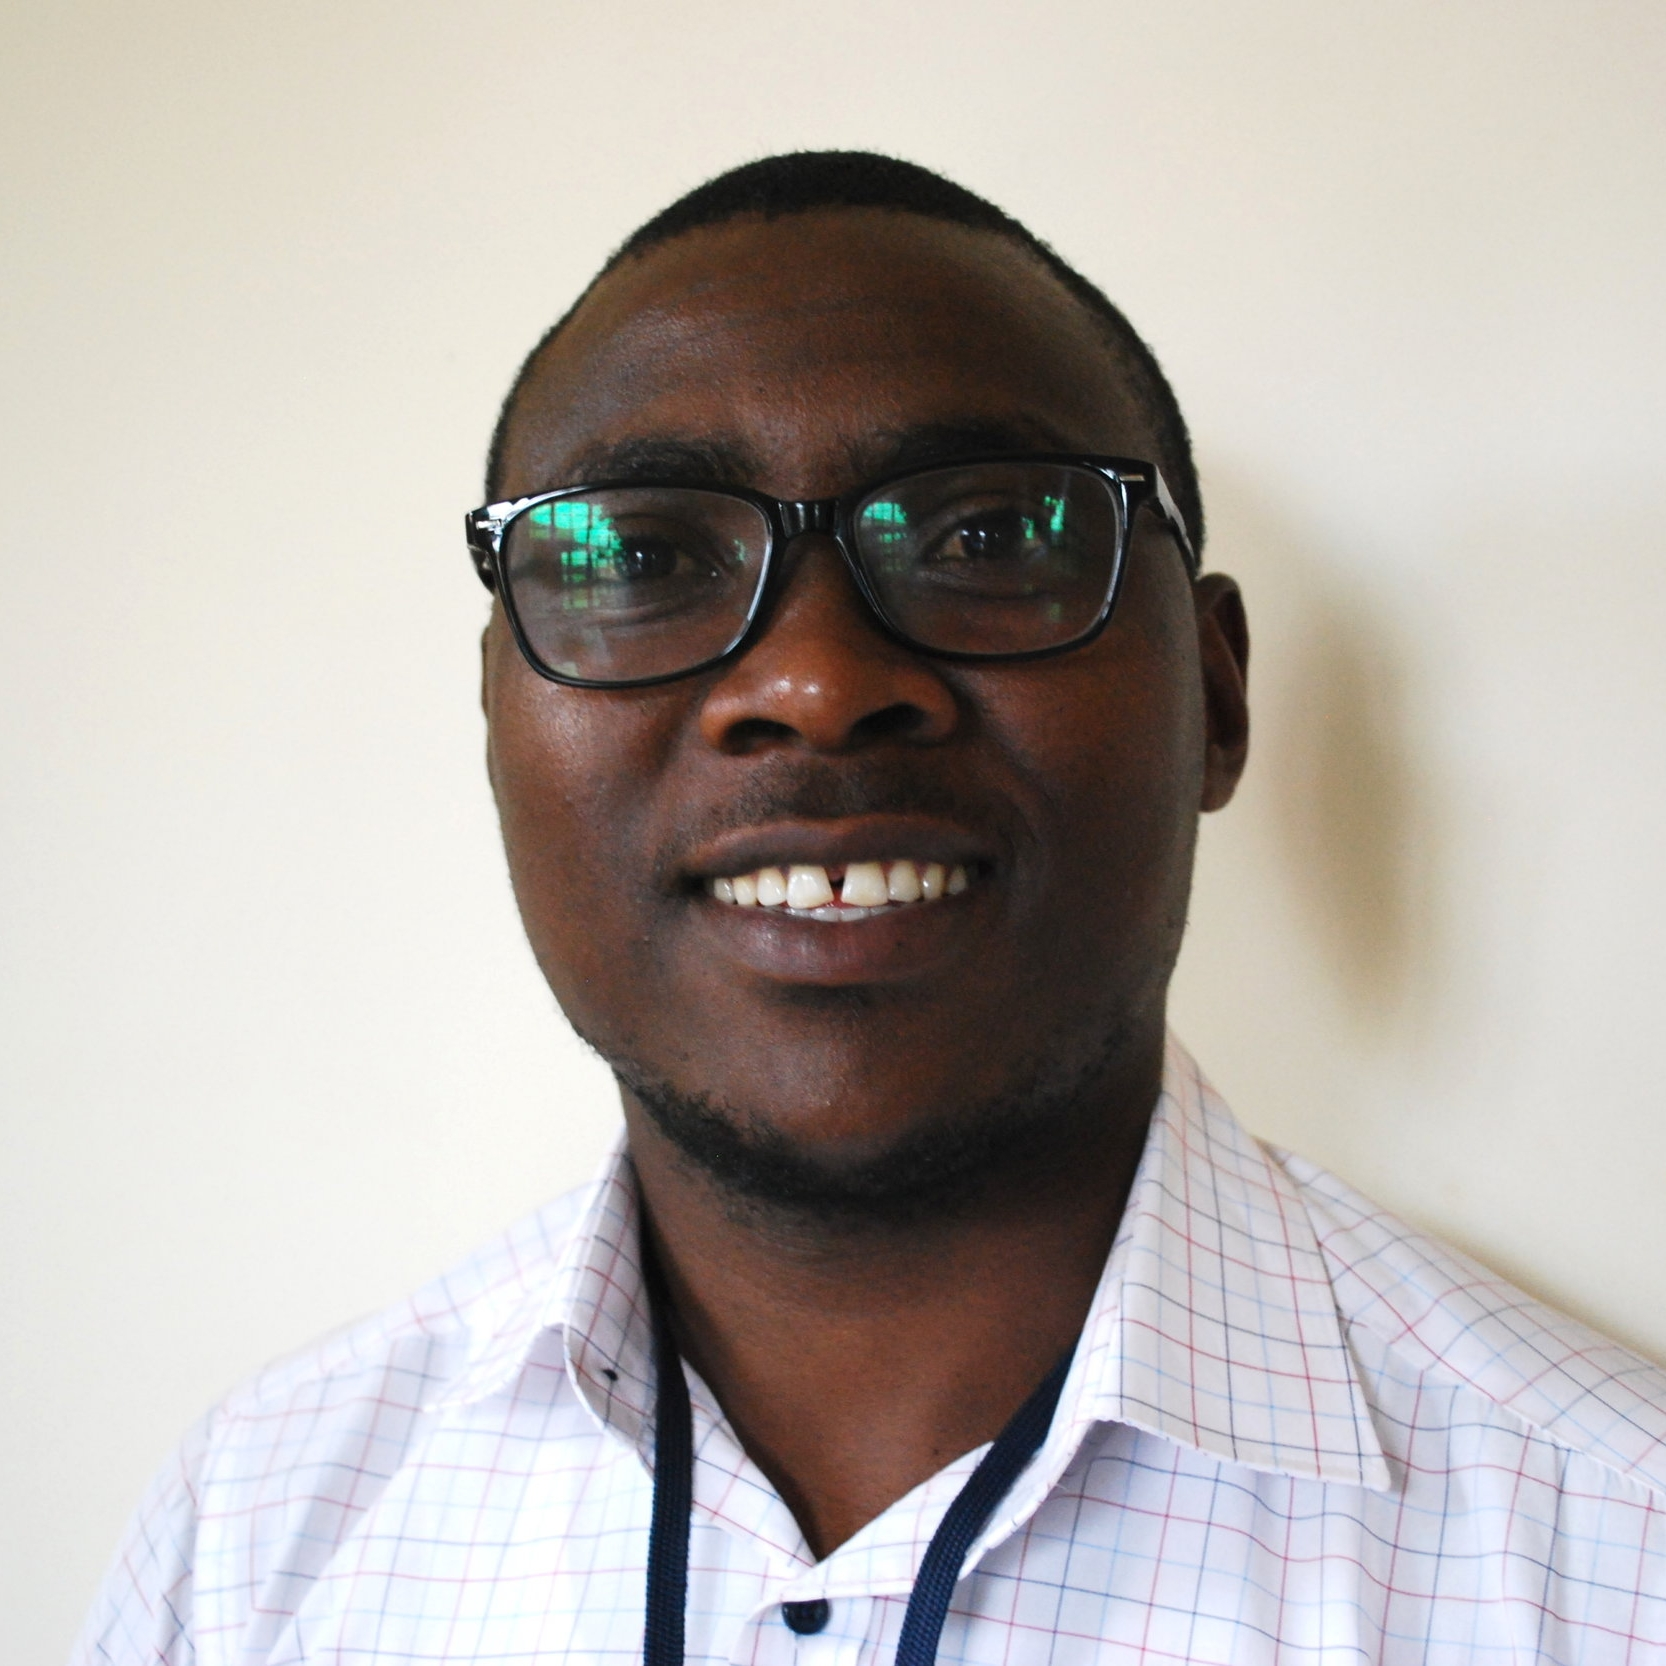 William is currently enrolled in a Master's in Health Systems Management program